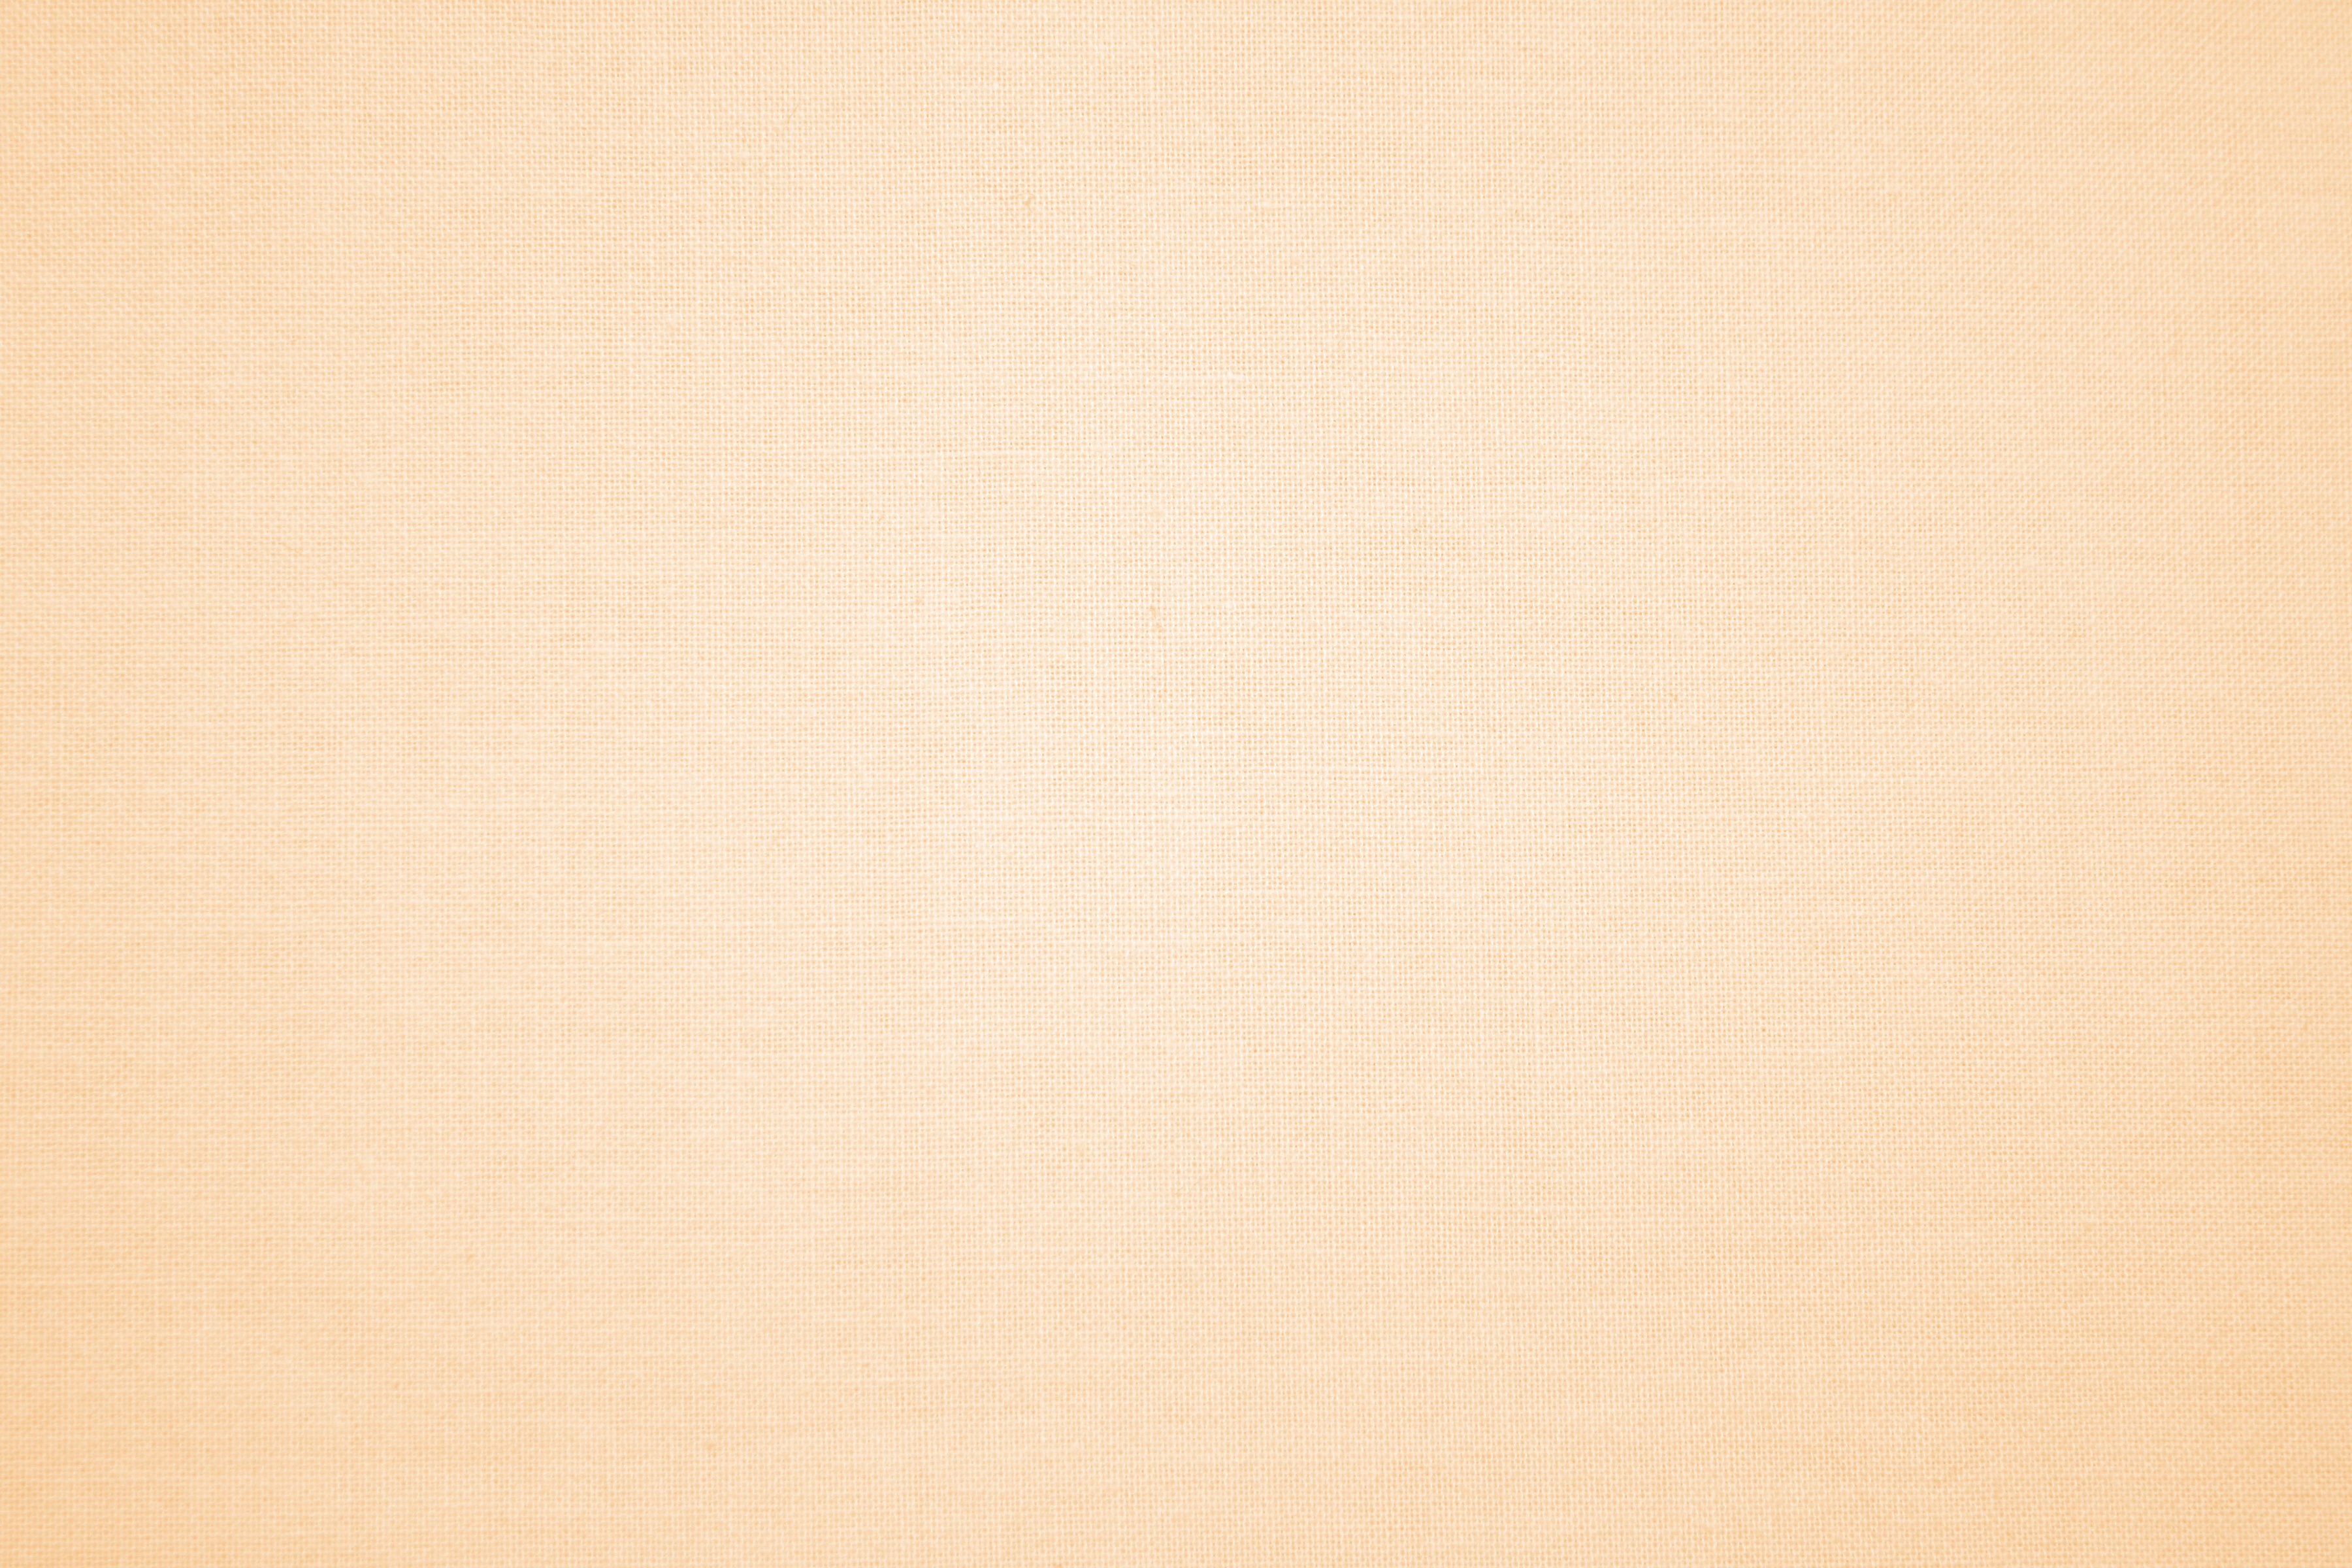 Peach Colored Canvas Fabric Texture Picture.